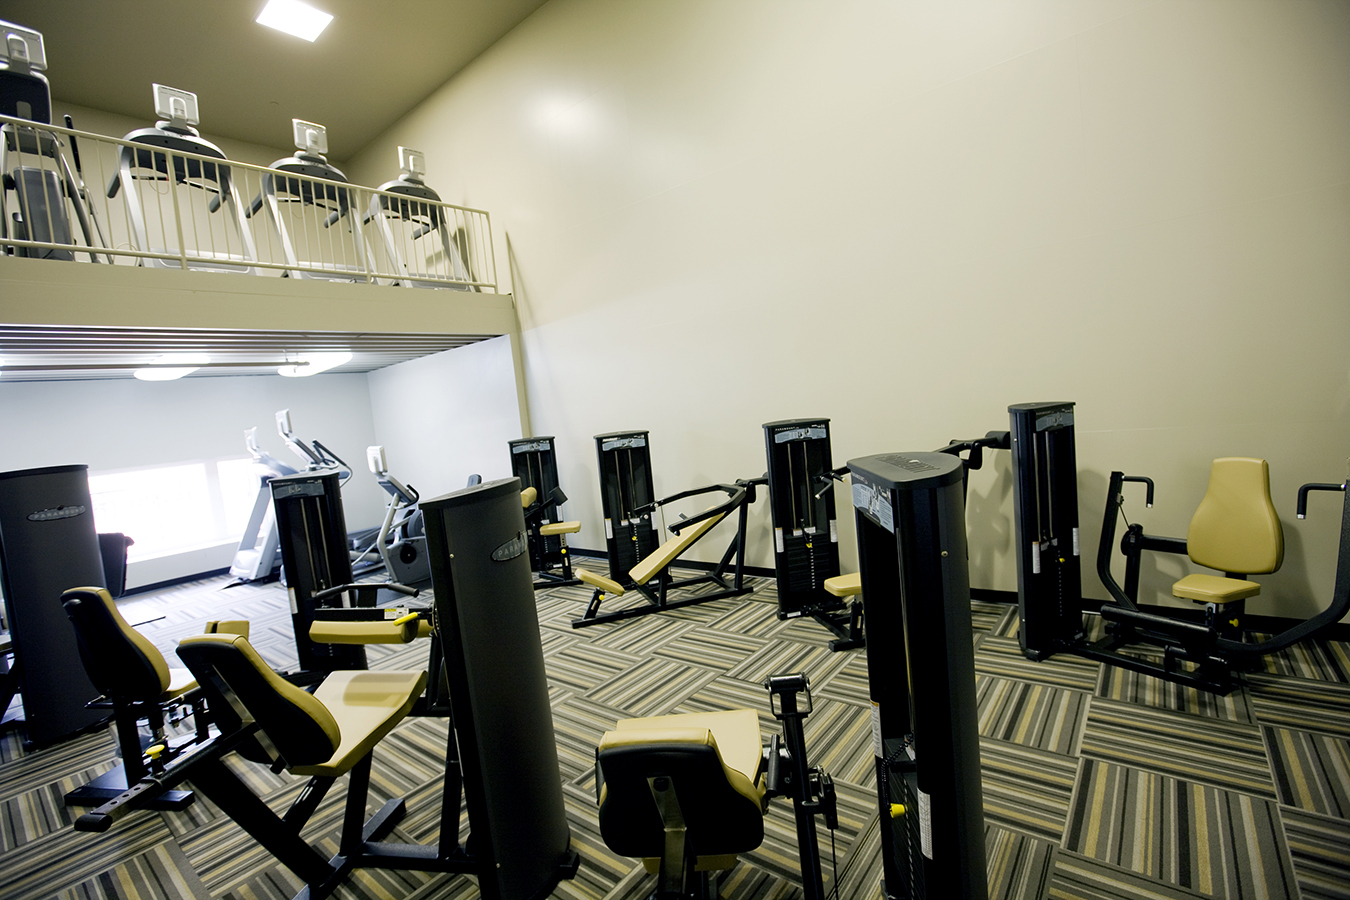 Fitness center at an apartment complex